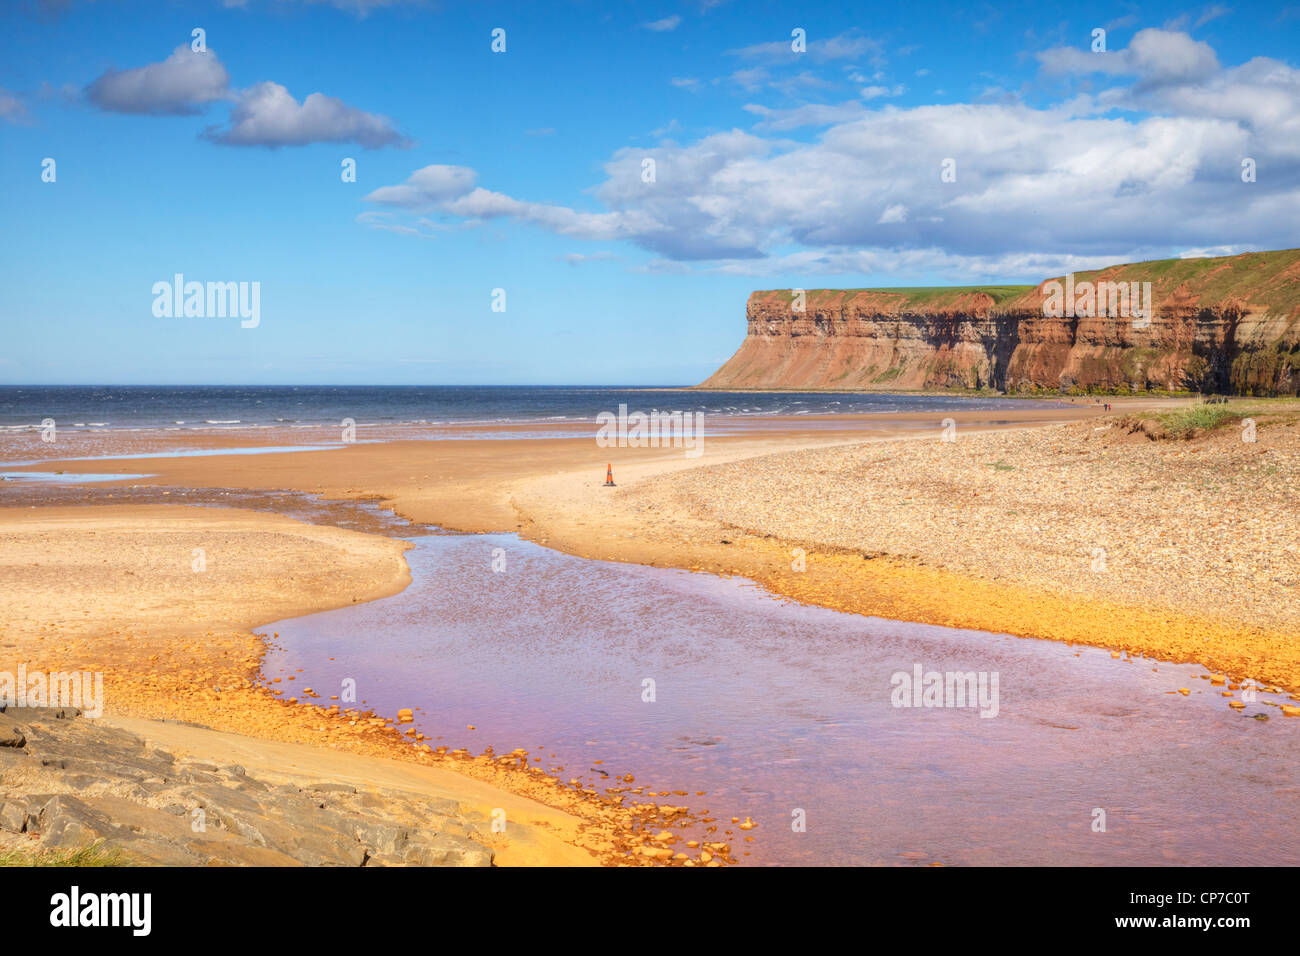 The beach at Saltburn-by-the-Sea and Huntcliff. - Stock Image